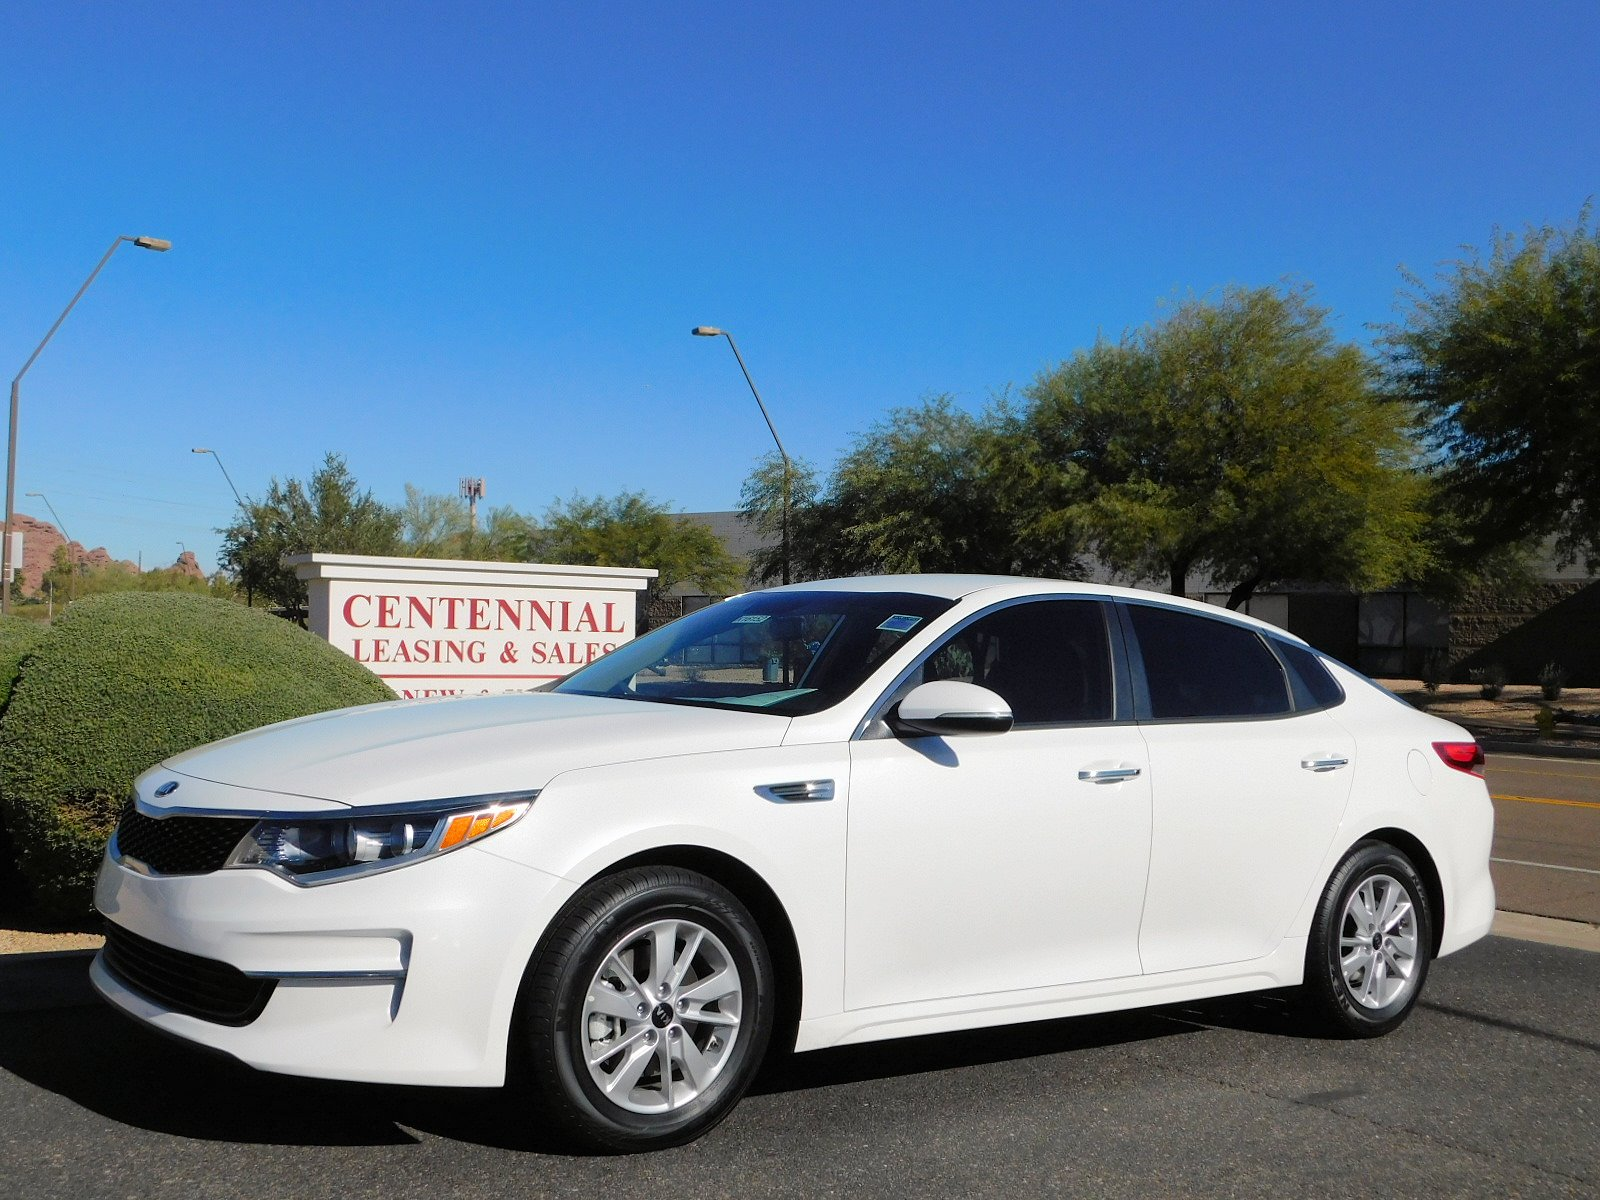 Used Cars for Sale Phoenix Best Of Phoenix Used Cars All New Used Car Listings for Arizona